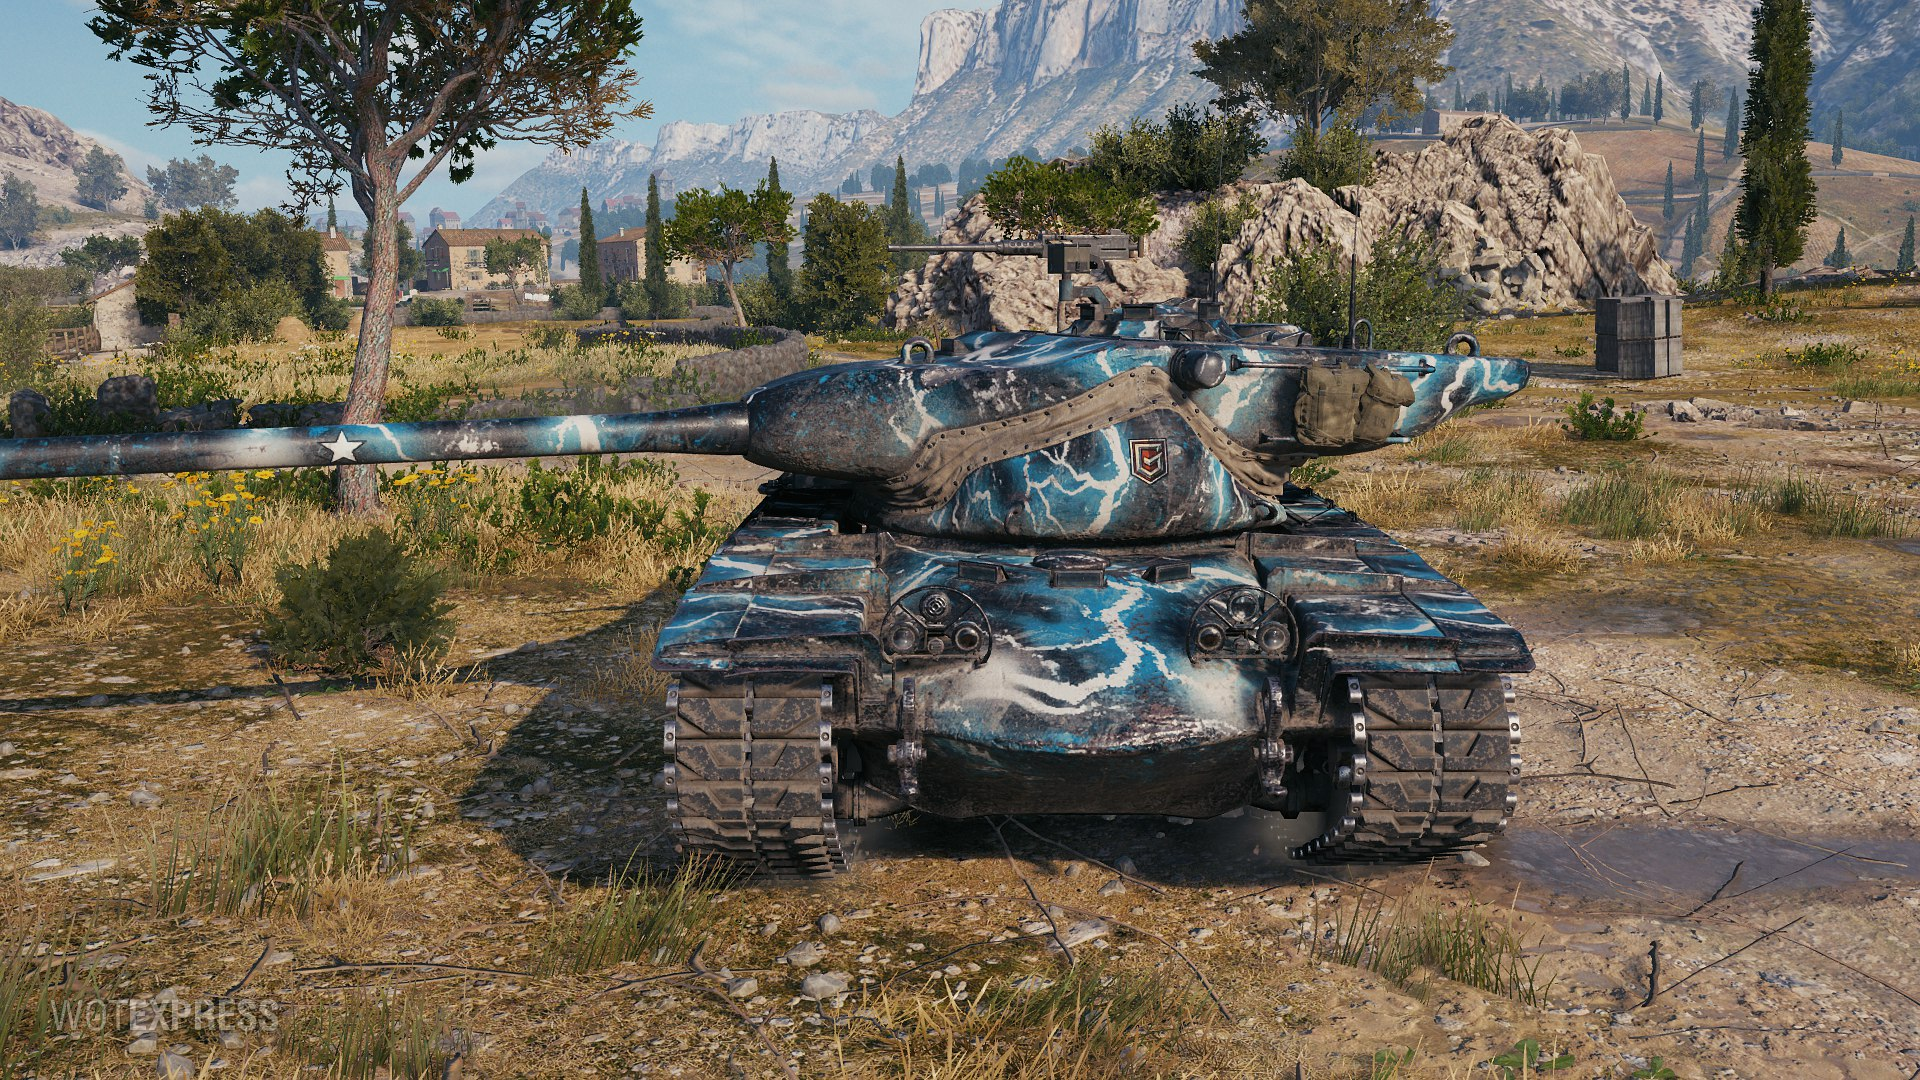 New clan wars camo set the armored patrol credit for pics wotexpress gumiabroncs Choice Image